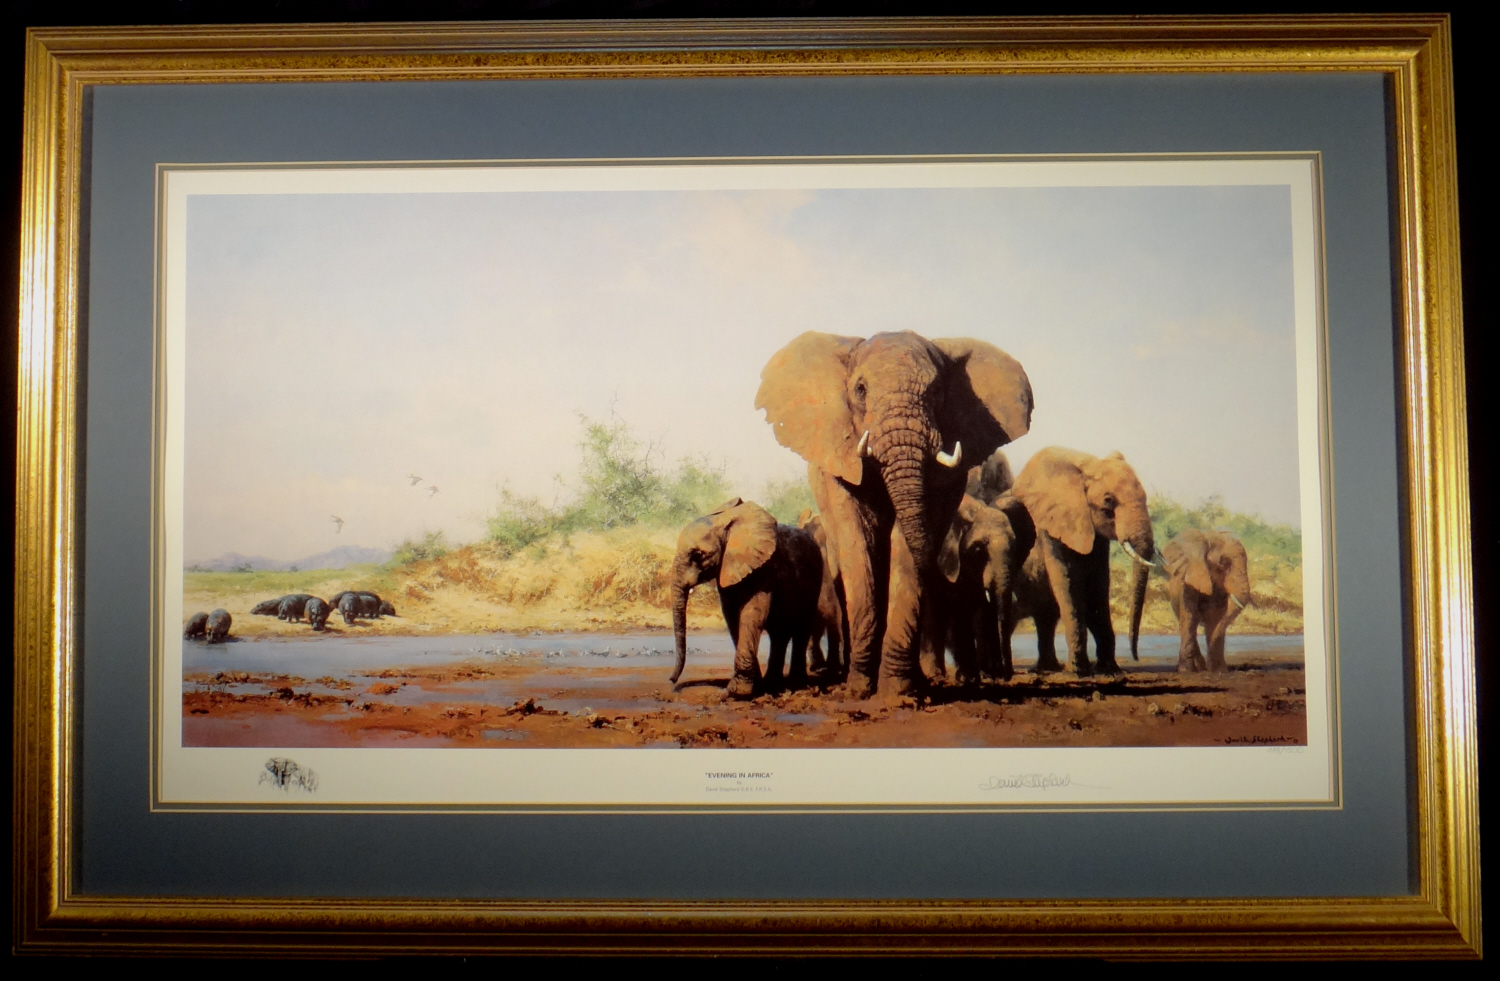 david shepherd, signed limited edition print, Evening in Africa